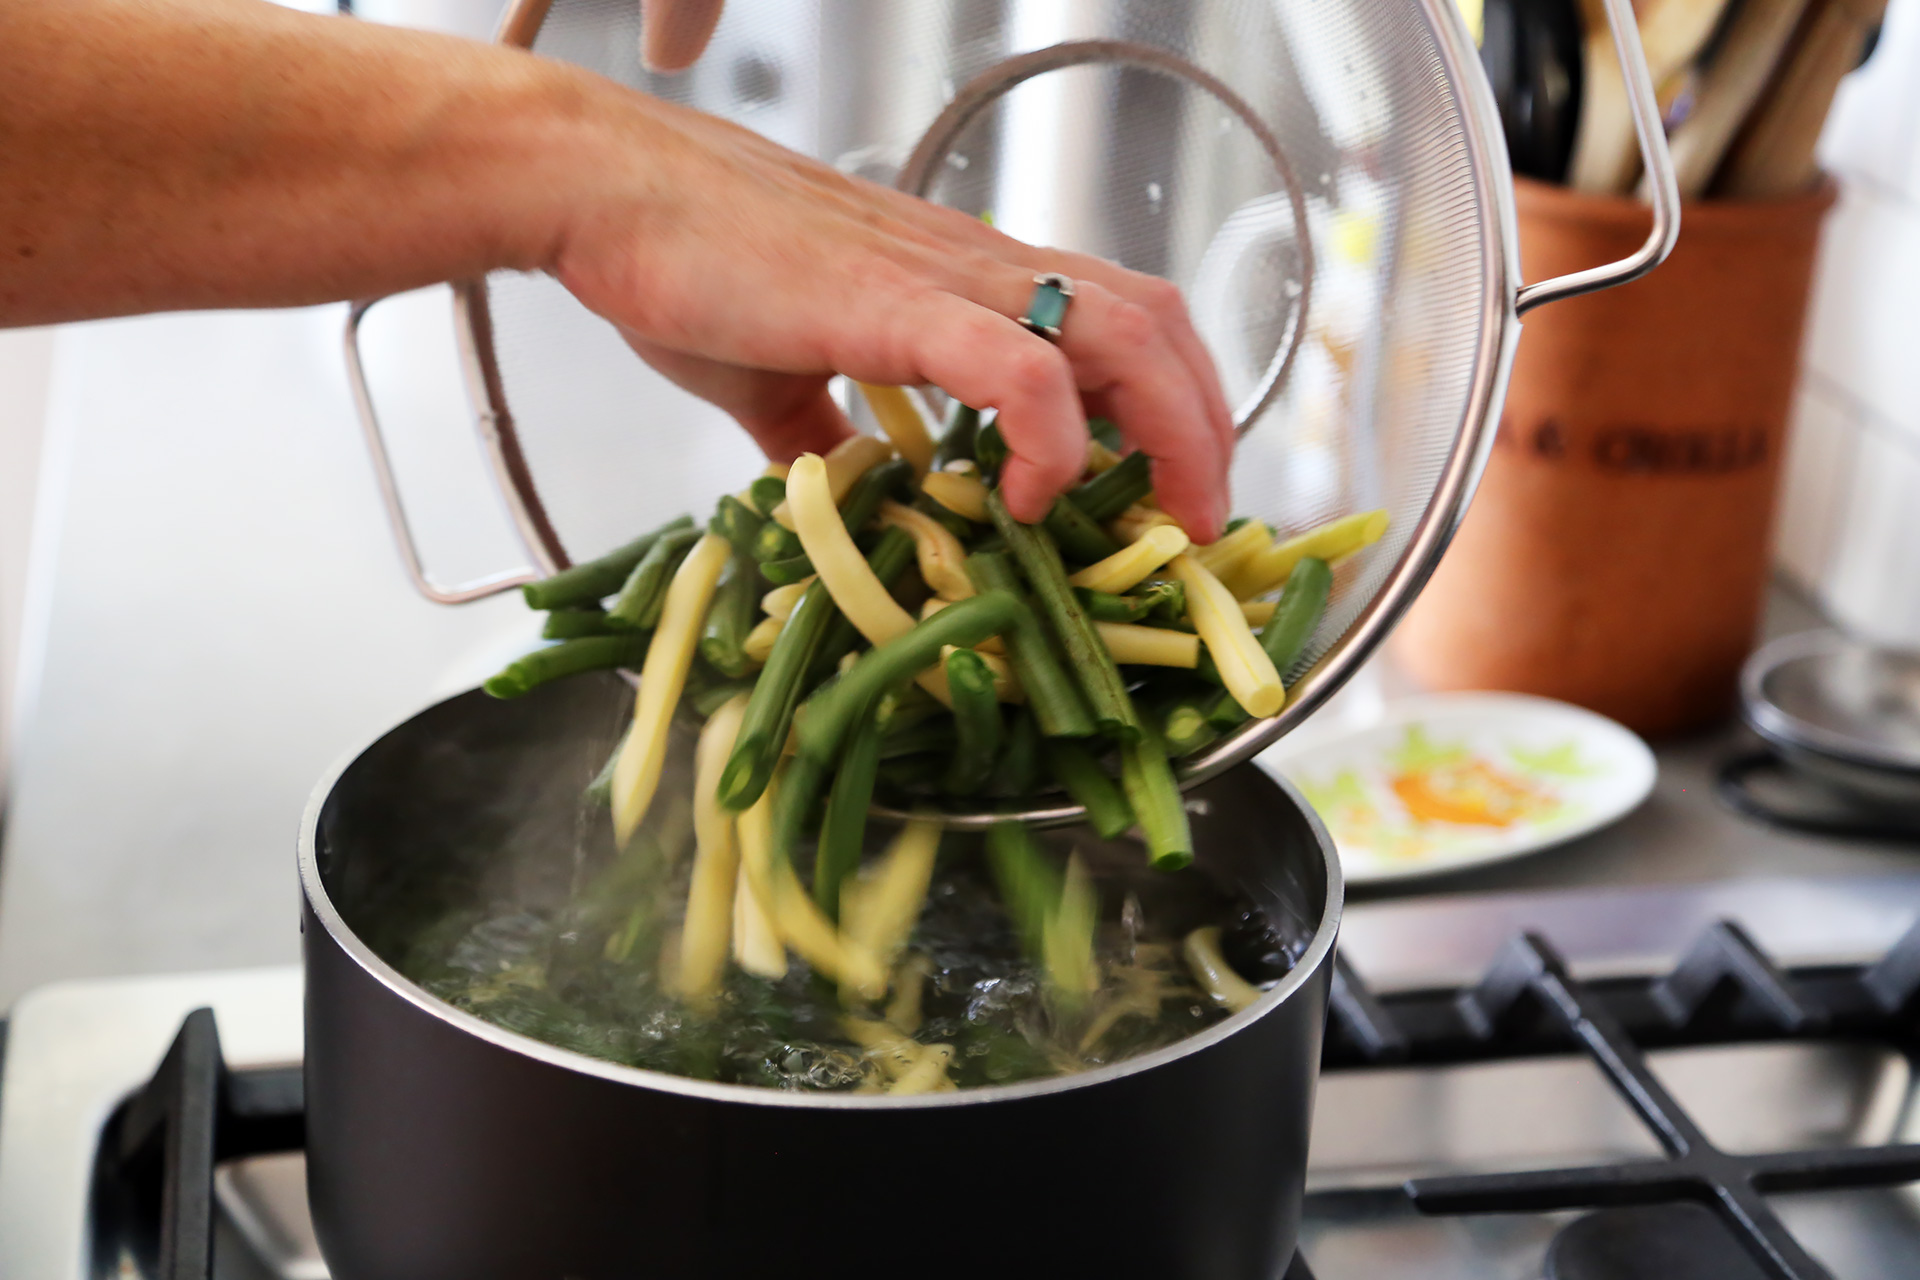 Bring a saucepan half filled with salted water to a boil over high heat. Reduce the heat to medium and add the green beans.